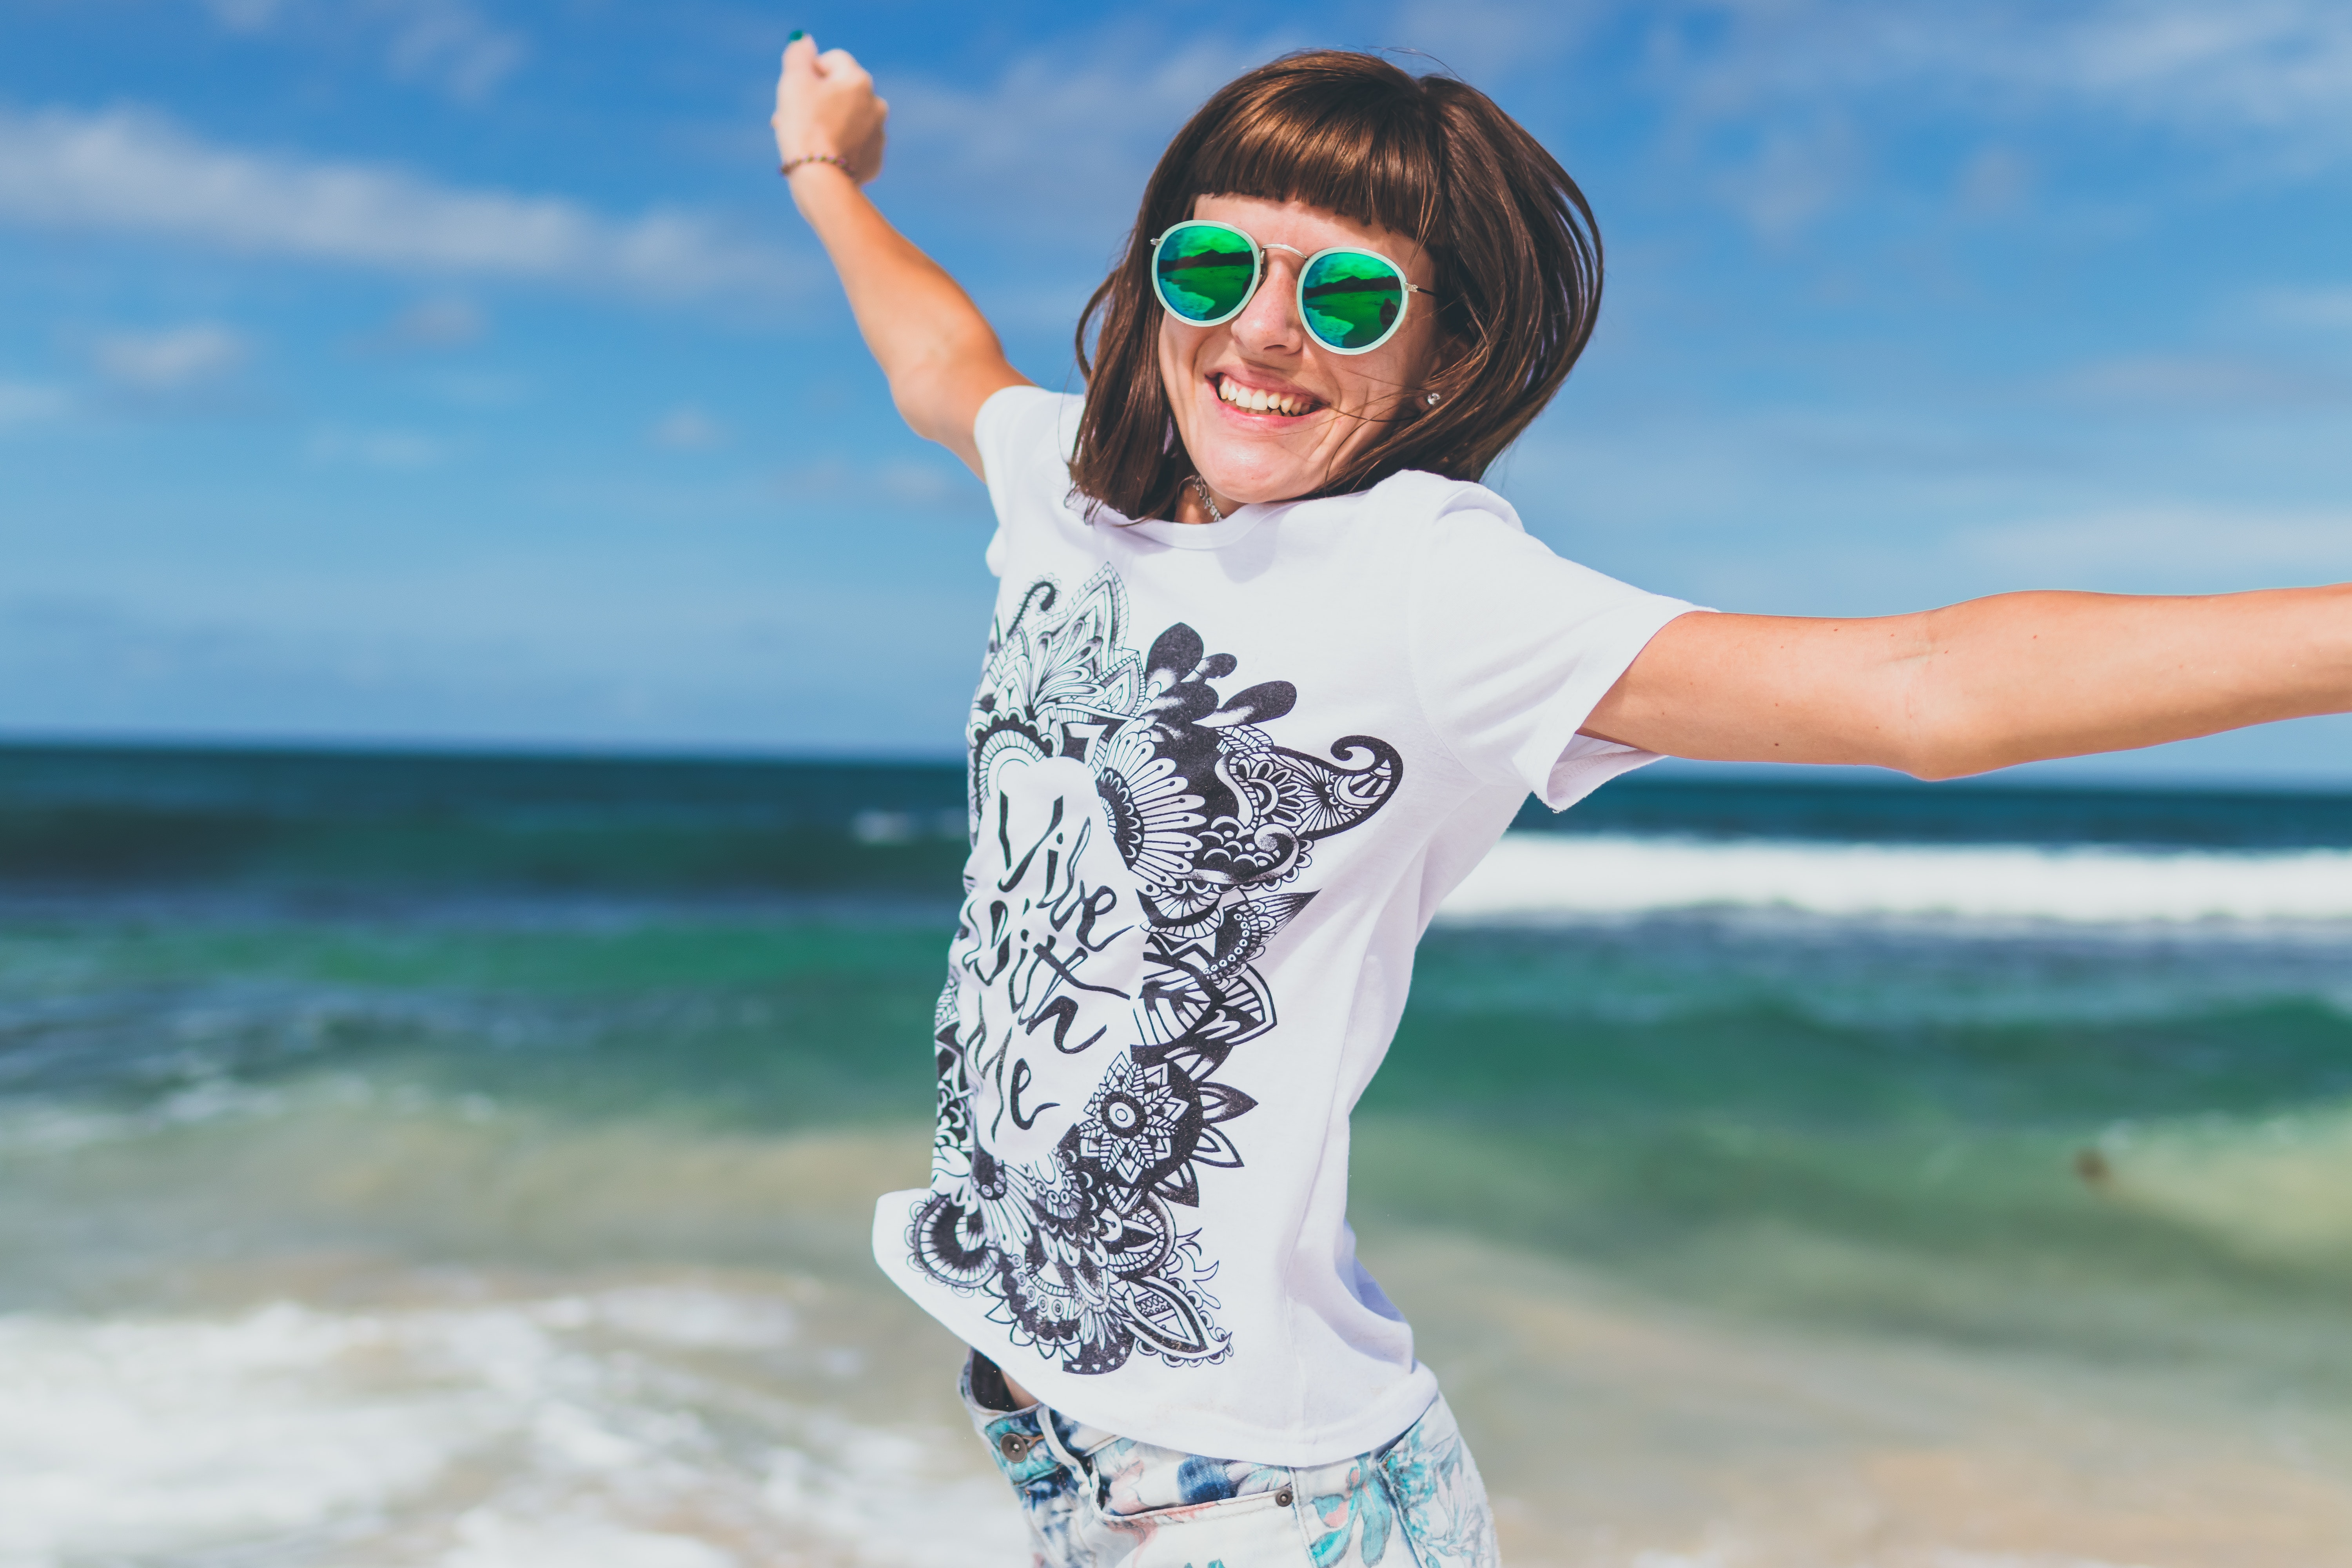 Woman in White and Black T-shirt Lifting Hands Smiling on Seashore, Attractive, Outside, Woman, Waves, HQ Photo